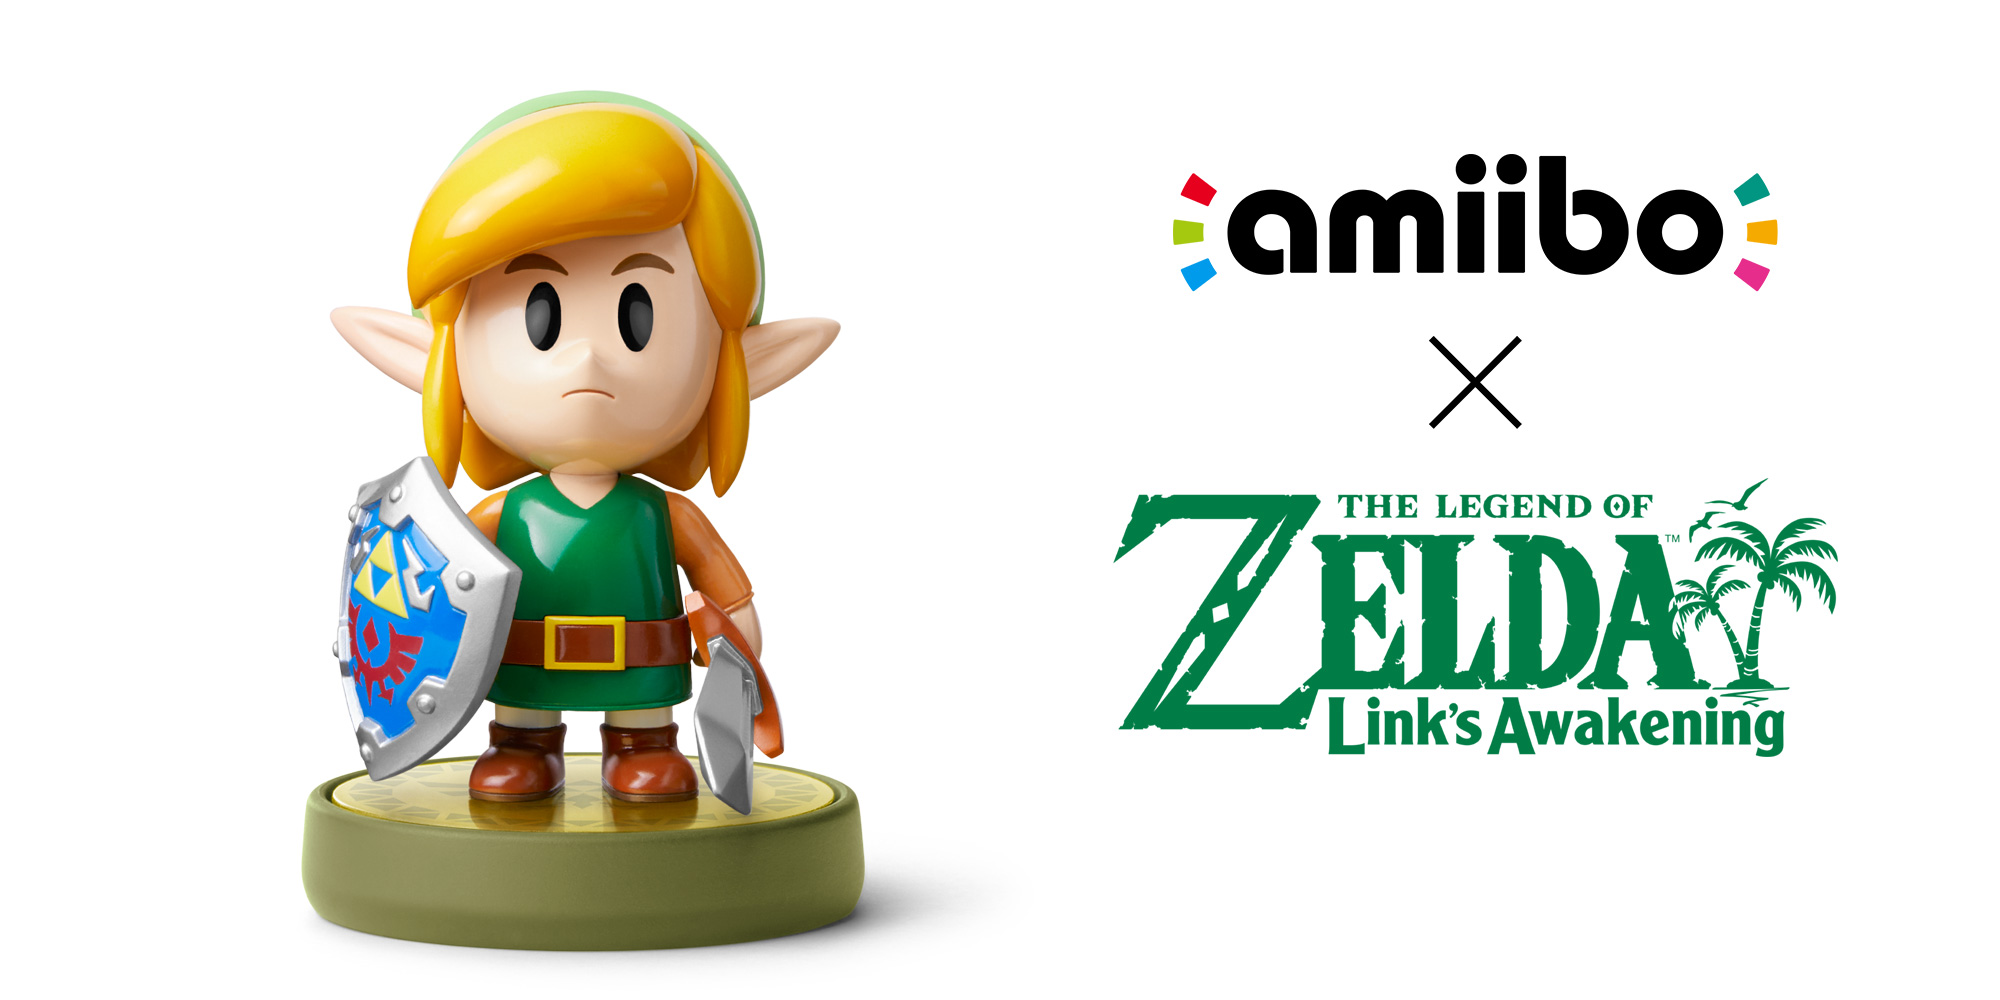 Link (Link's Awakening) | The Legend of Zelda Collection